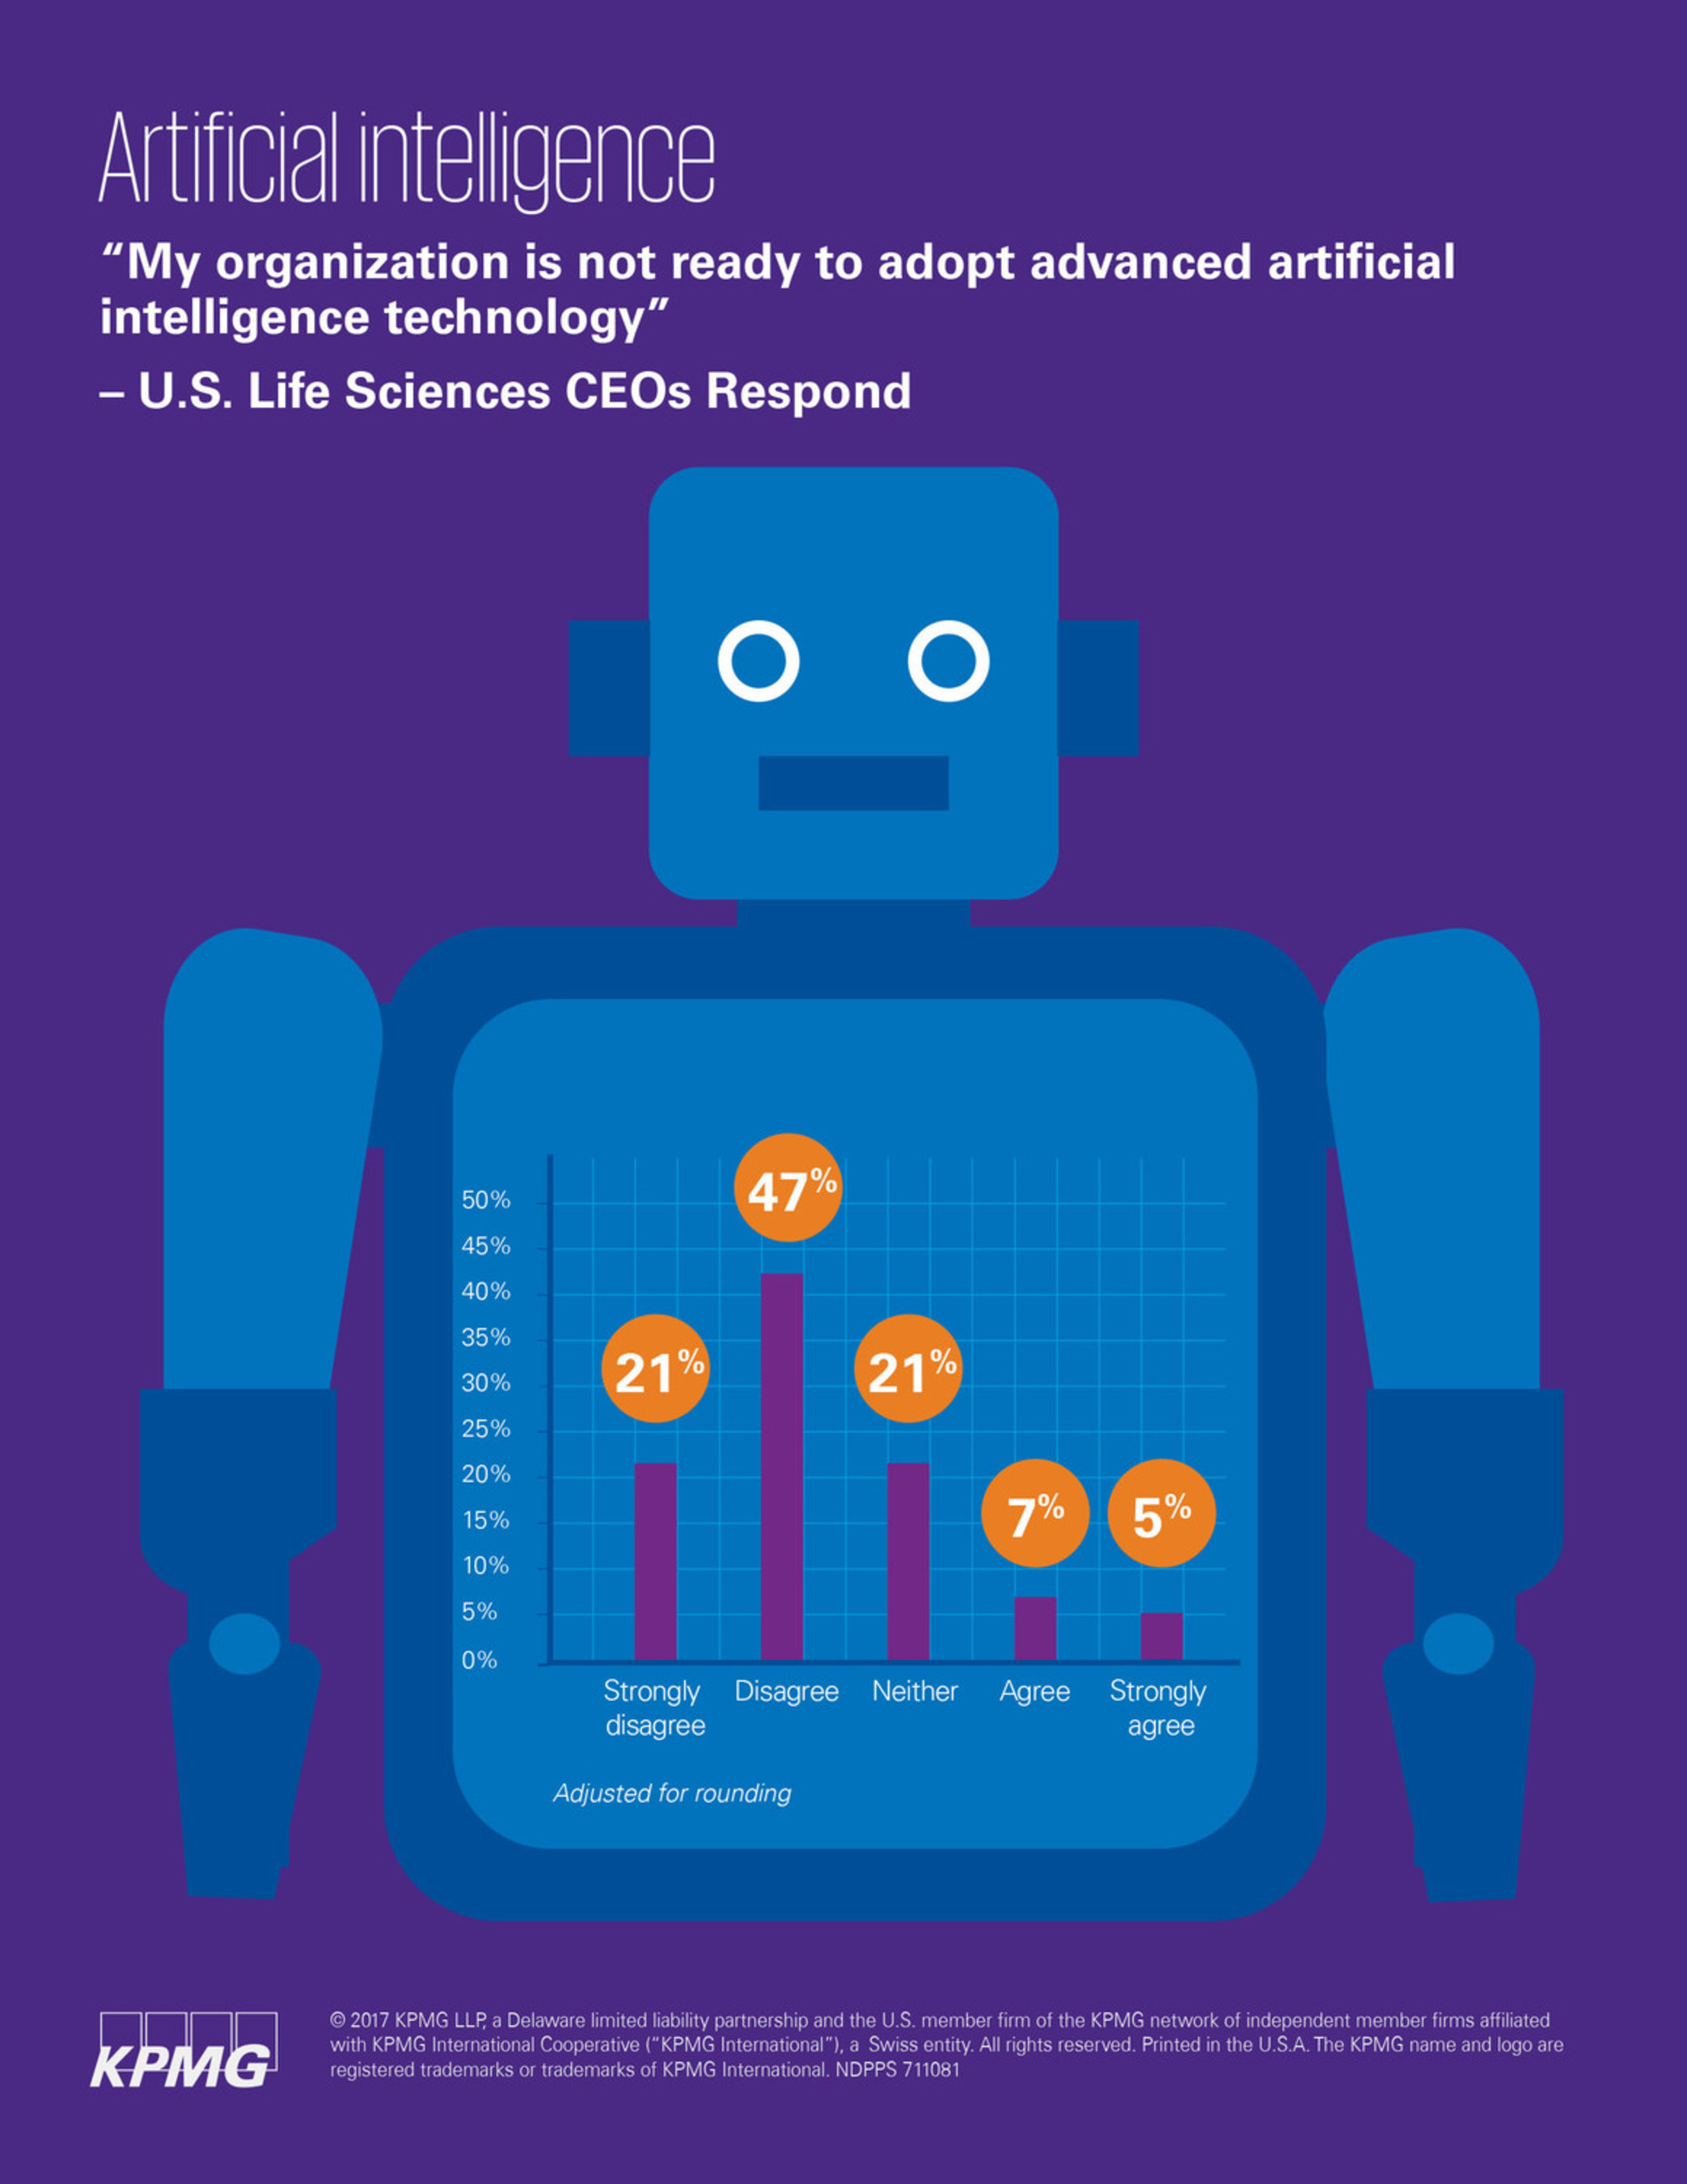 More than two-thirds of U.S. life sciences CEOs say their organizations are ready to adopt advanced artificial intelligence technology, according to KPMG's 2017 CEO Outlook.  KPMG surveyed 43 U.S. life sciences CEOs as part of a broader survey of  400 CEOs in the United States and 1300 CEOs around the world about issues affecting business performance, including technological disruption.